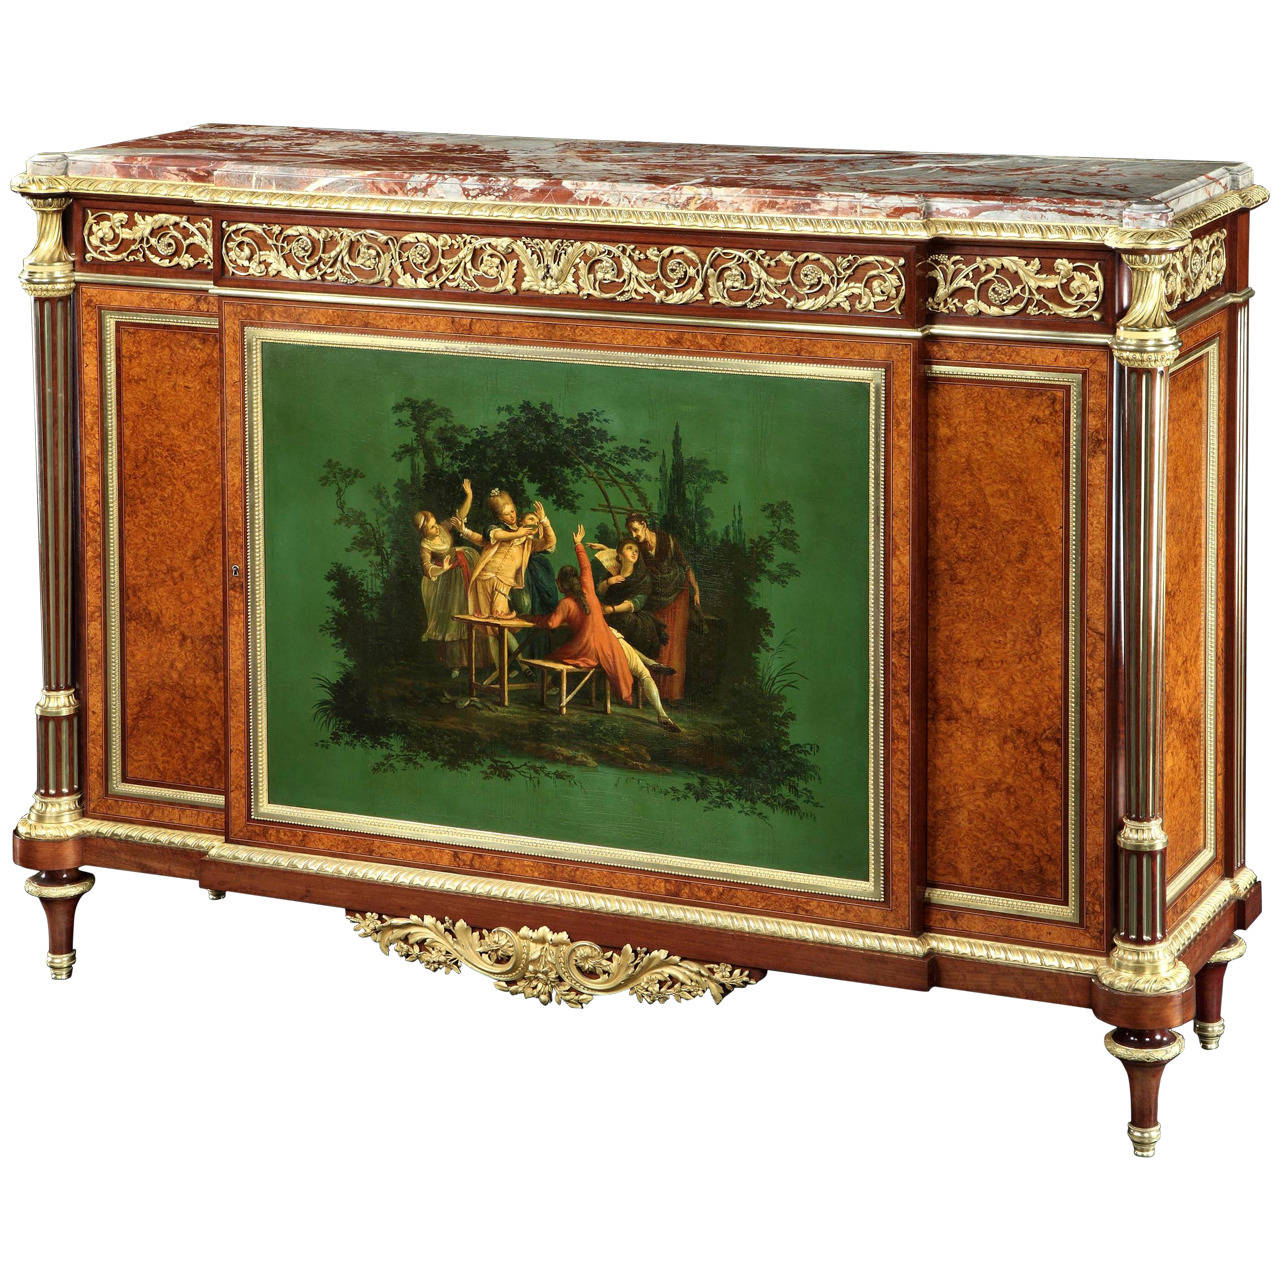 French Side Cabinet with Court Scene in Vernis Martin by Henry Dasson